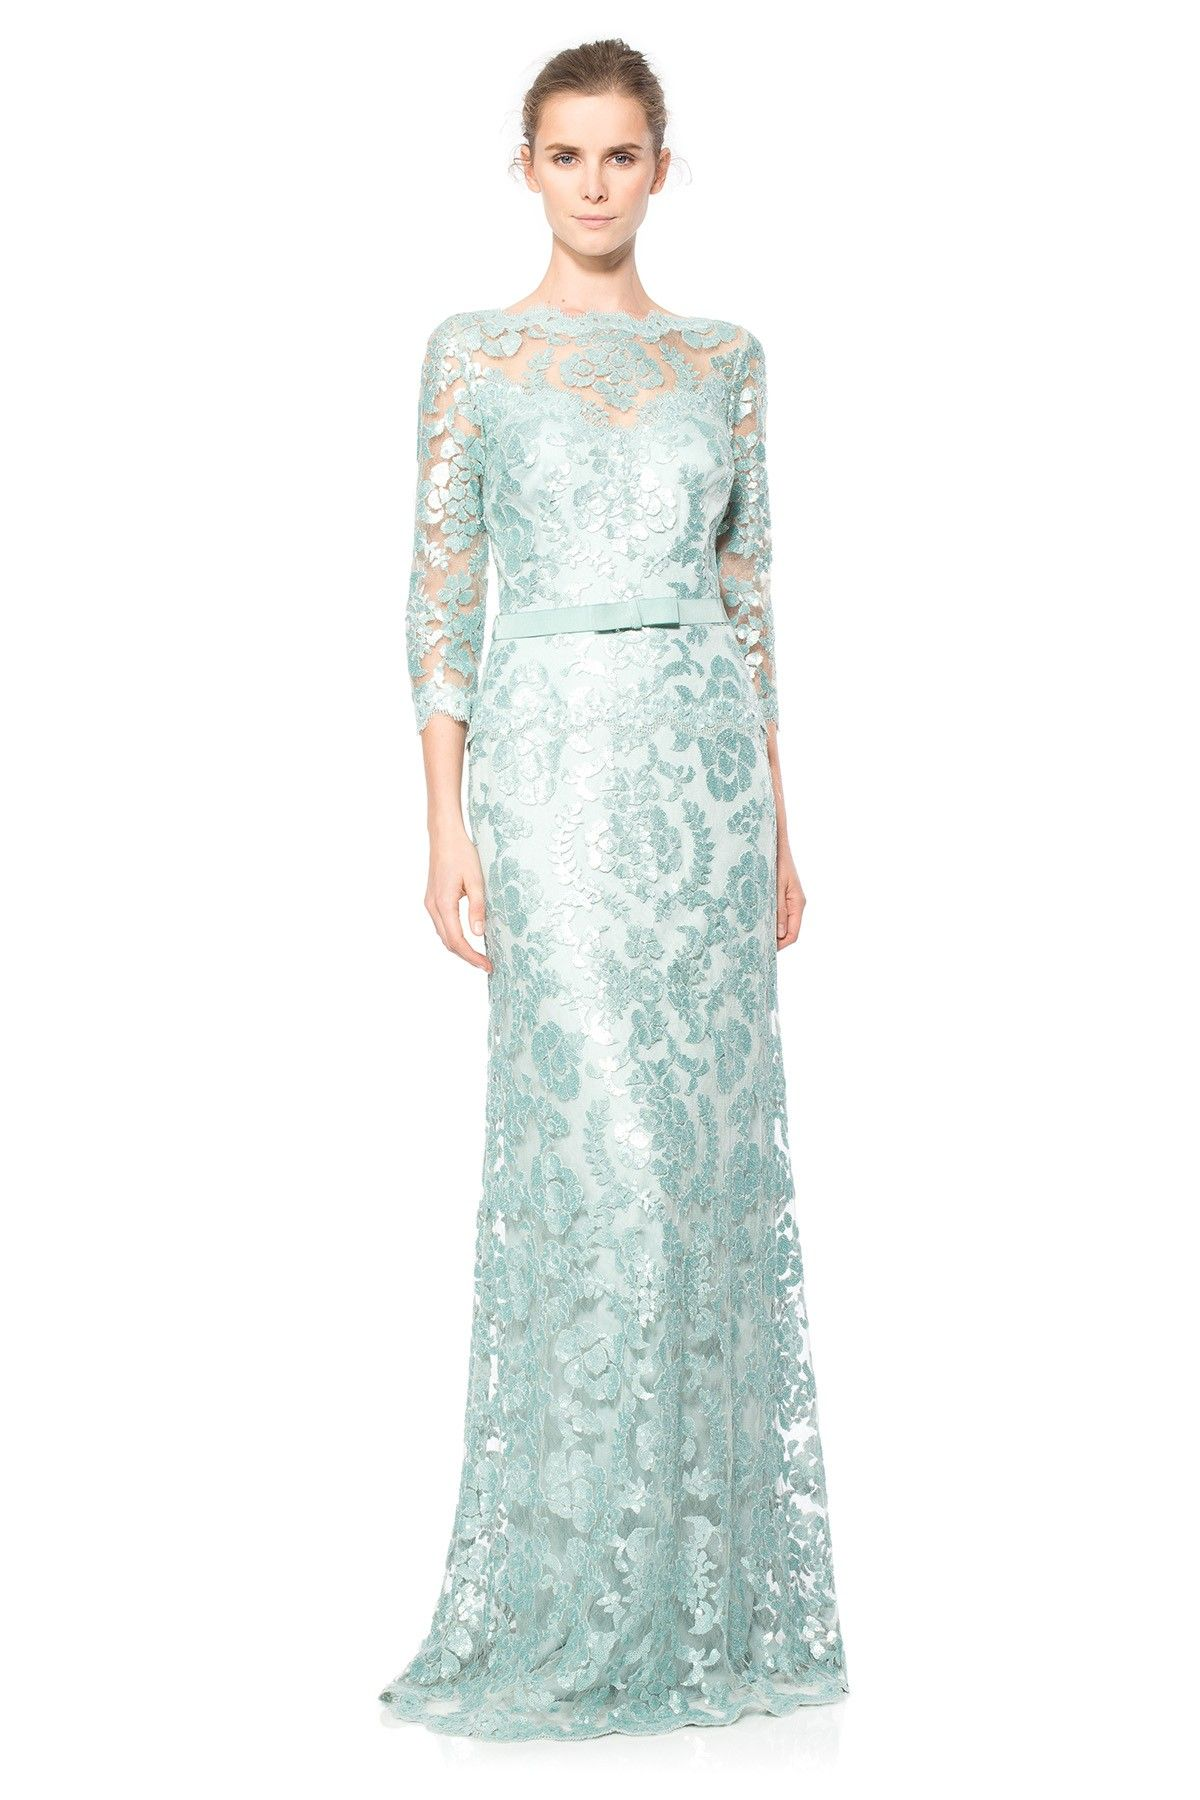 7b71b66b27c I tried this dress on in Vegas. The lace is created with sequins. It ...